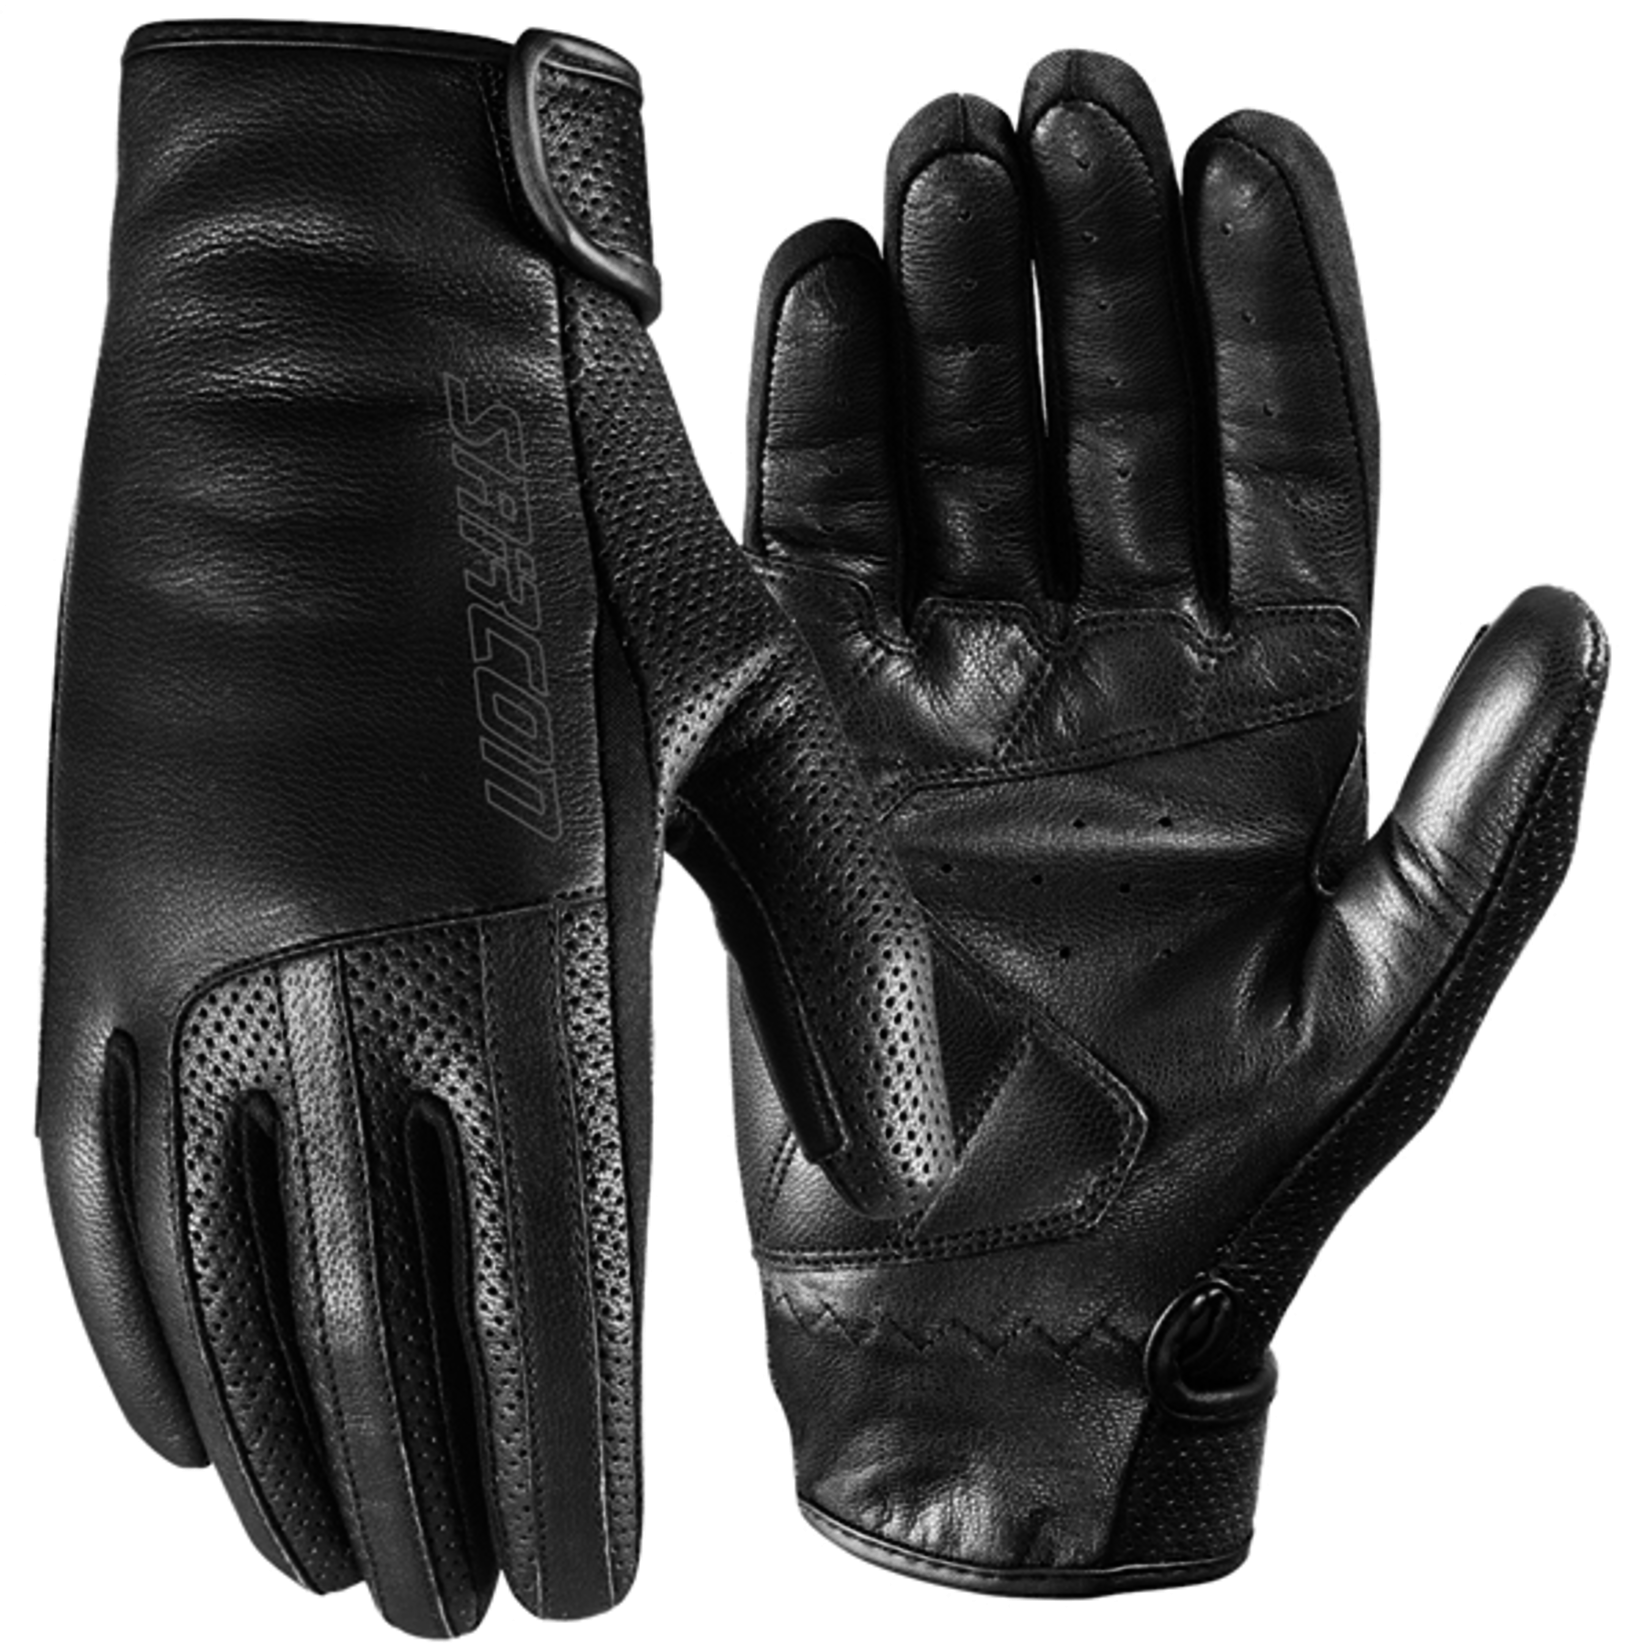 Apparel GLOVE, Viper Leather Black